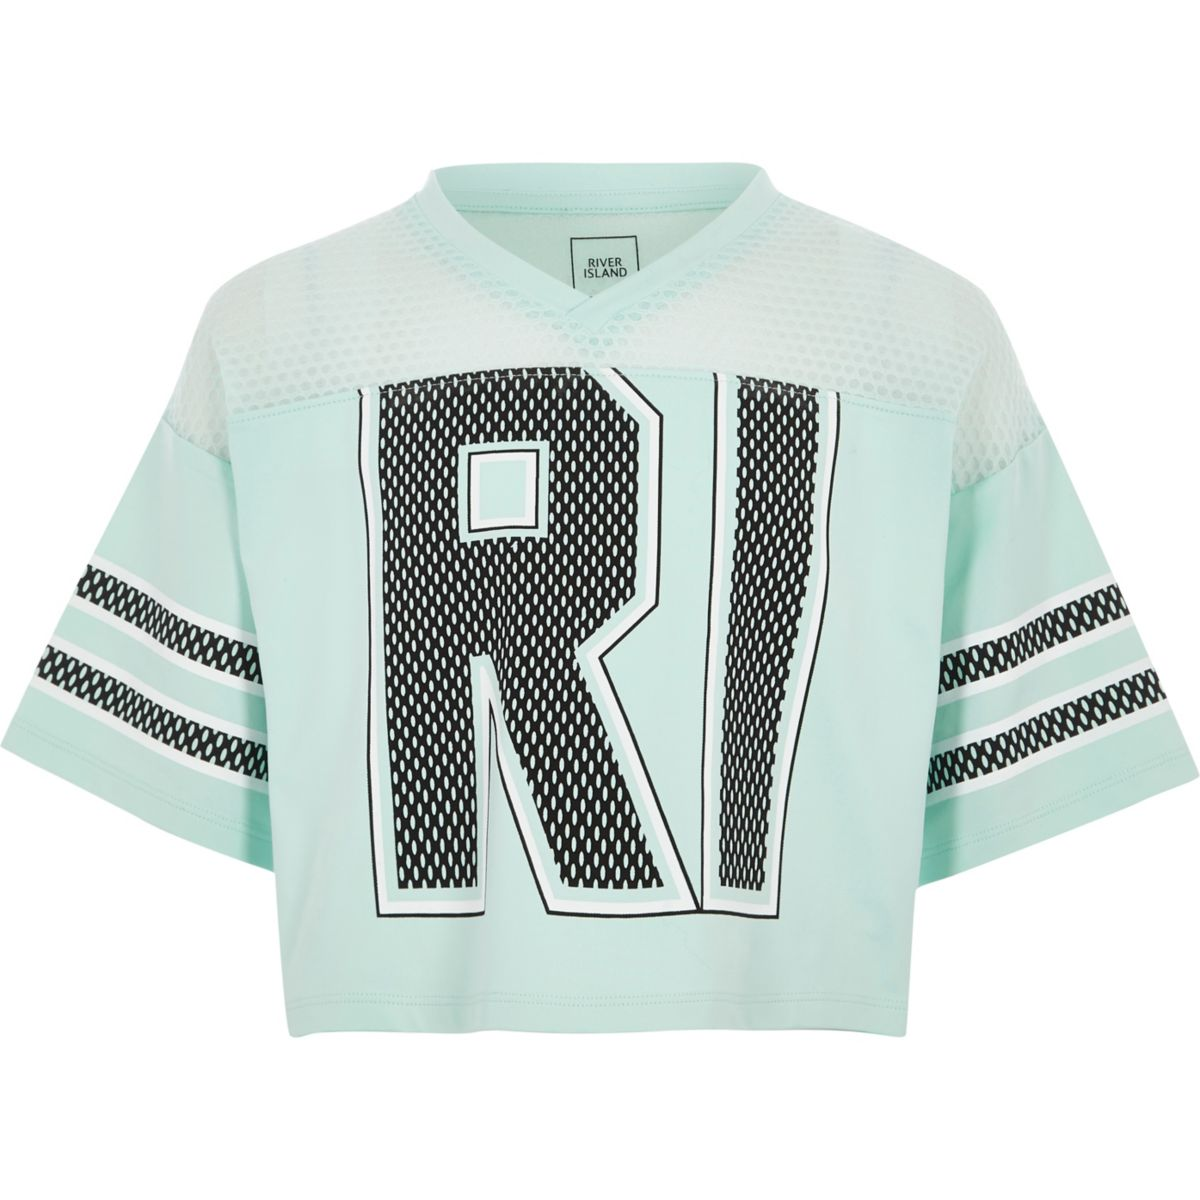 Girls mint Green RI varsity style T-shirt